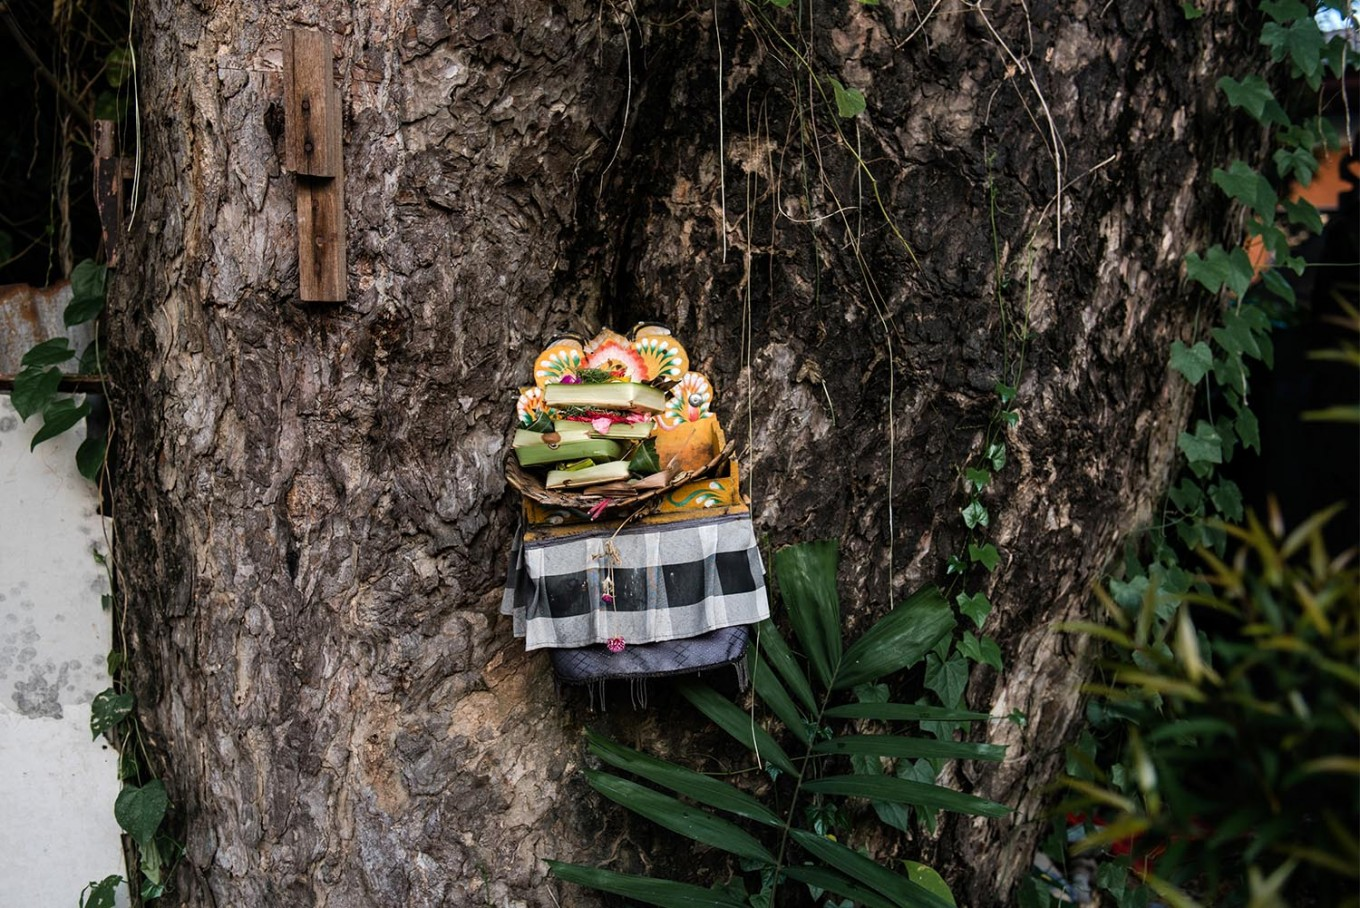 A wooden plate of offerings is placed in a tree on Jl. Hayam Wuruk in Denpasar, Bali. JP/Anggara Mahendra